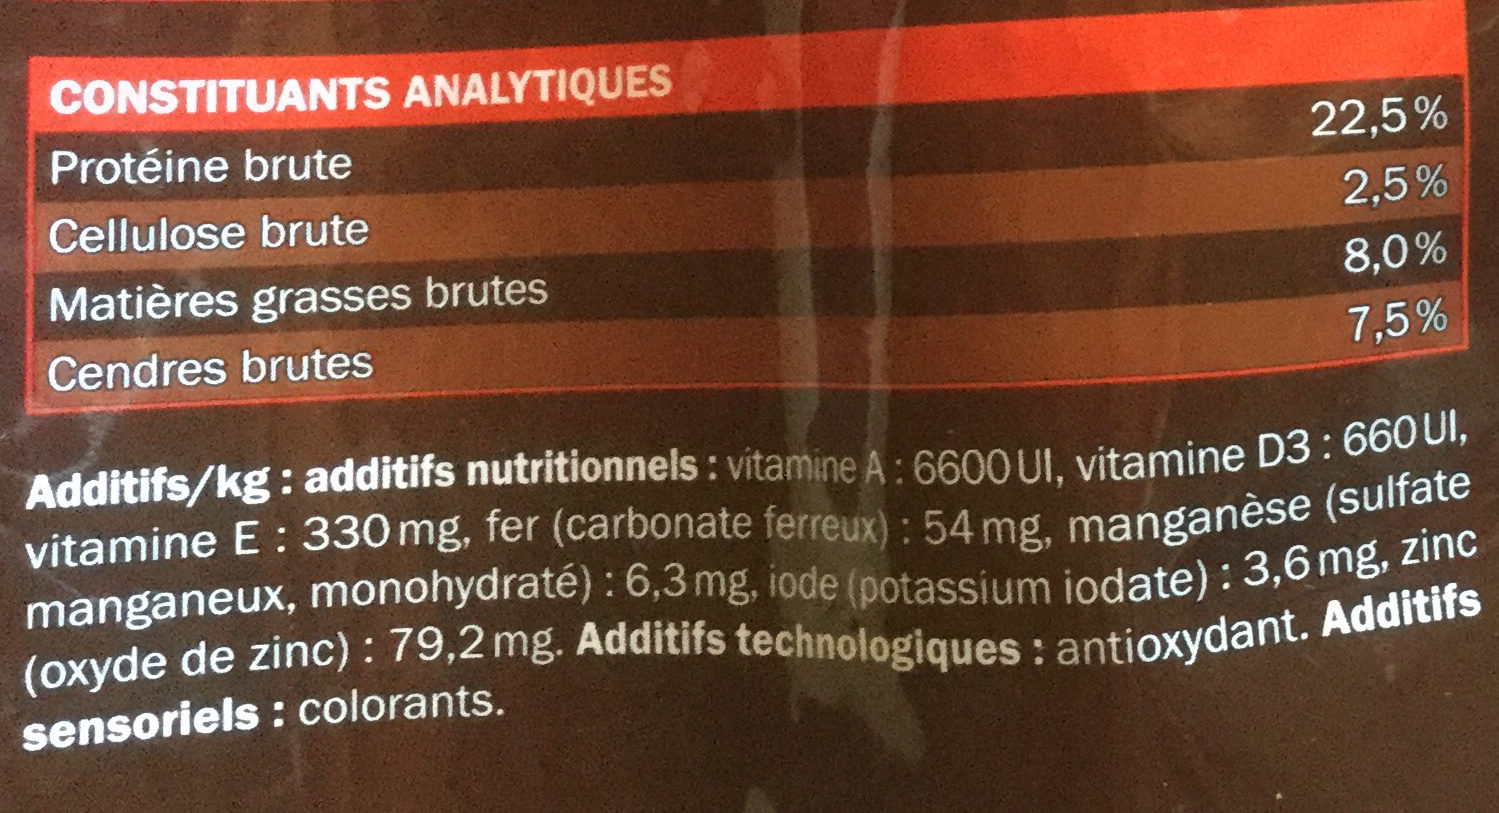 Multi-croquettes au bœuf - Nutrition facts